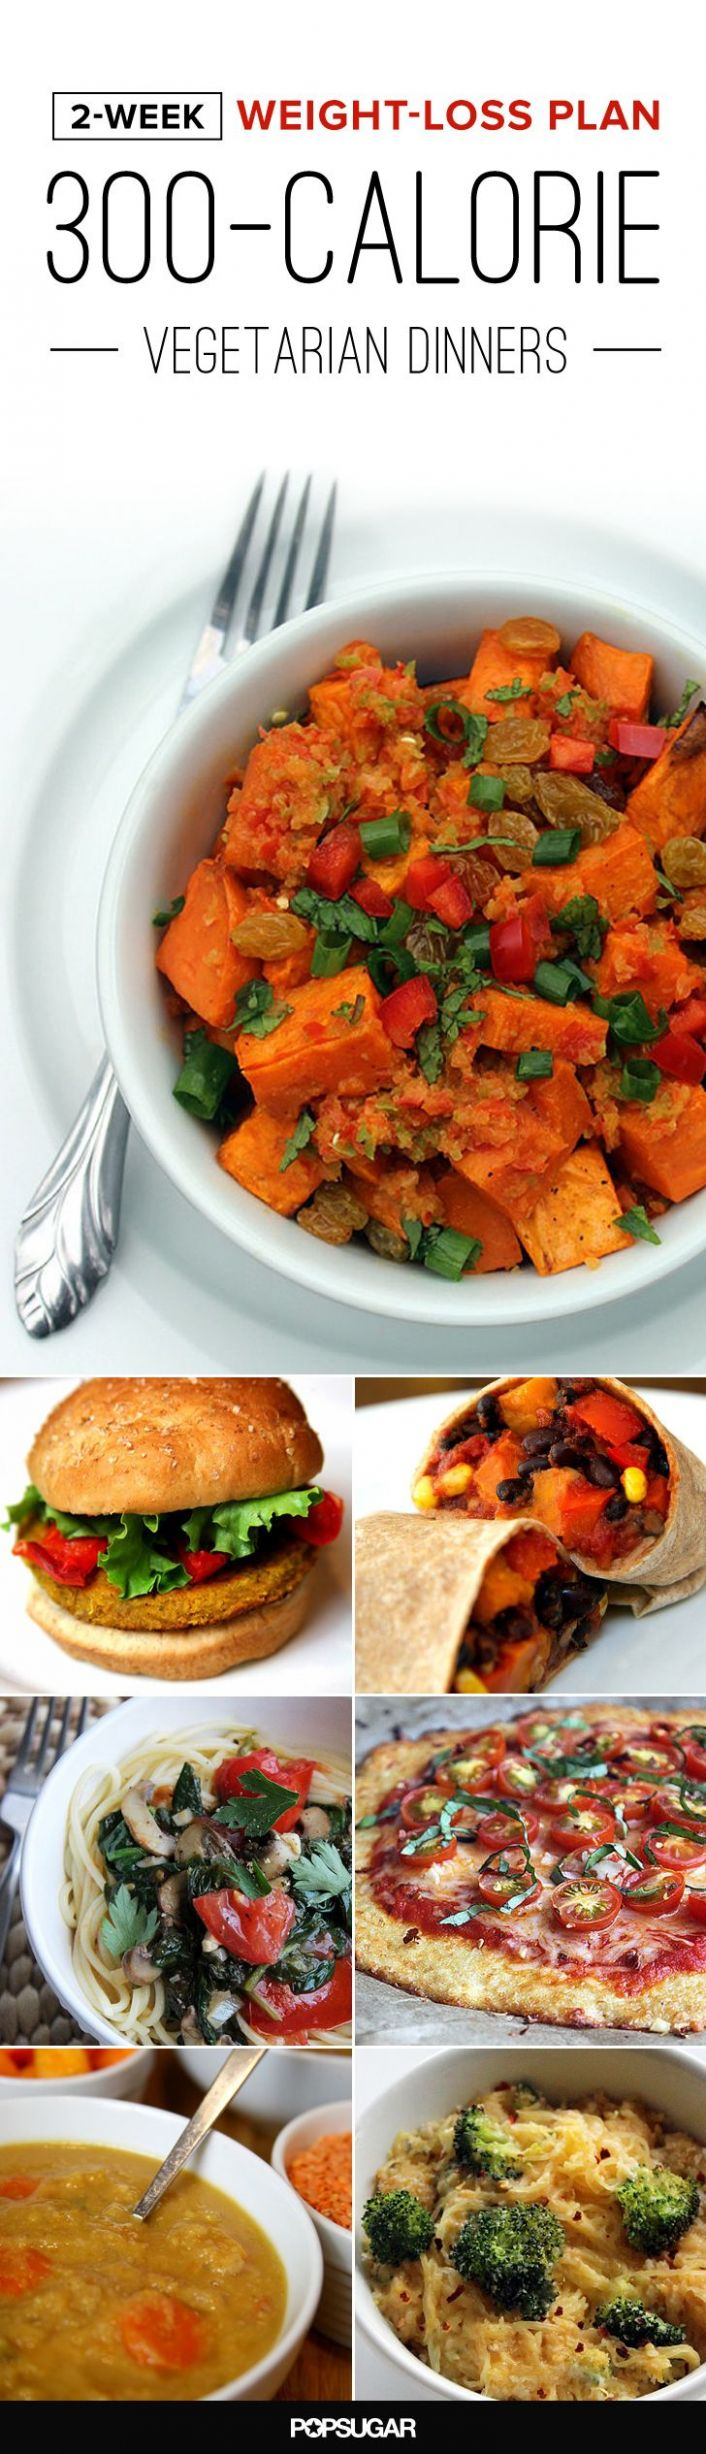 8-Week Meal Plan: Vegetarian Dinners Under 8 Calories | Dinner ...